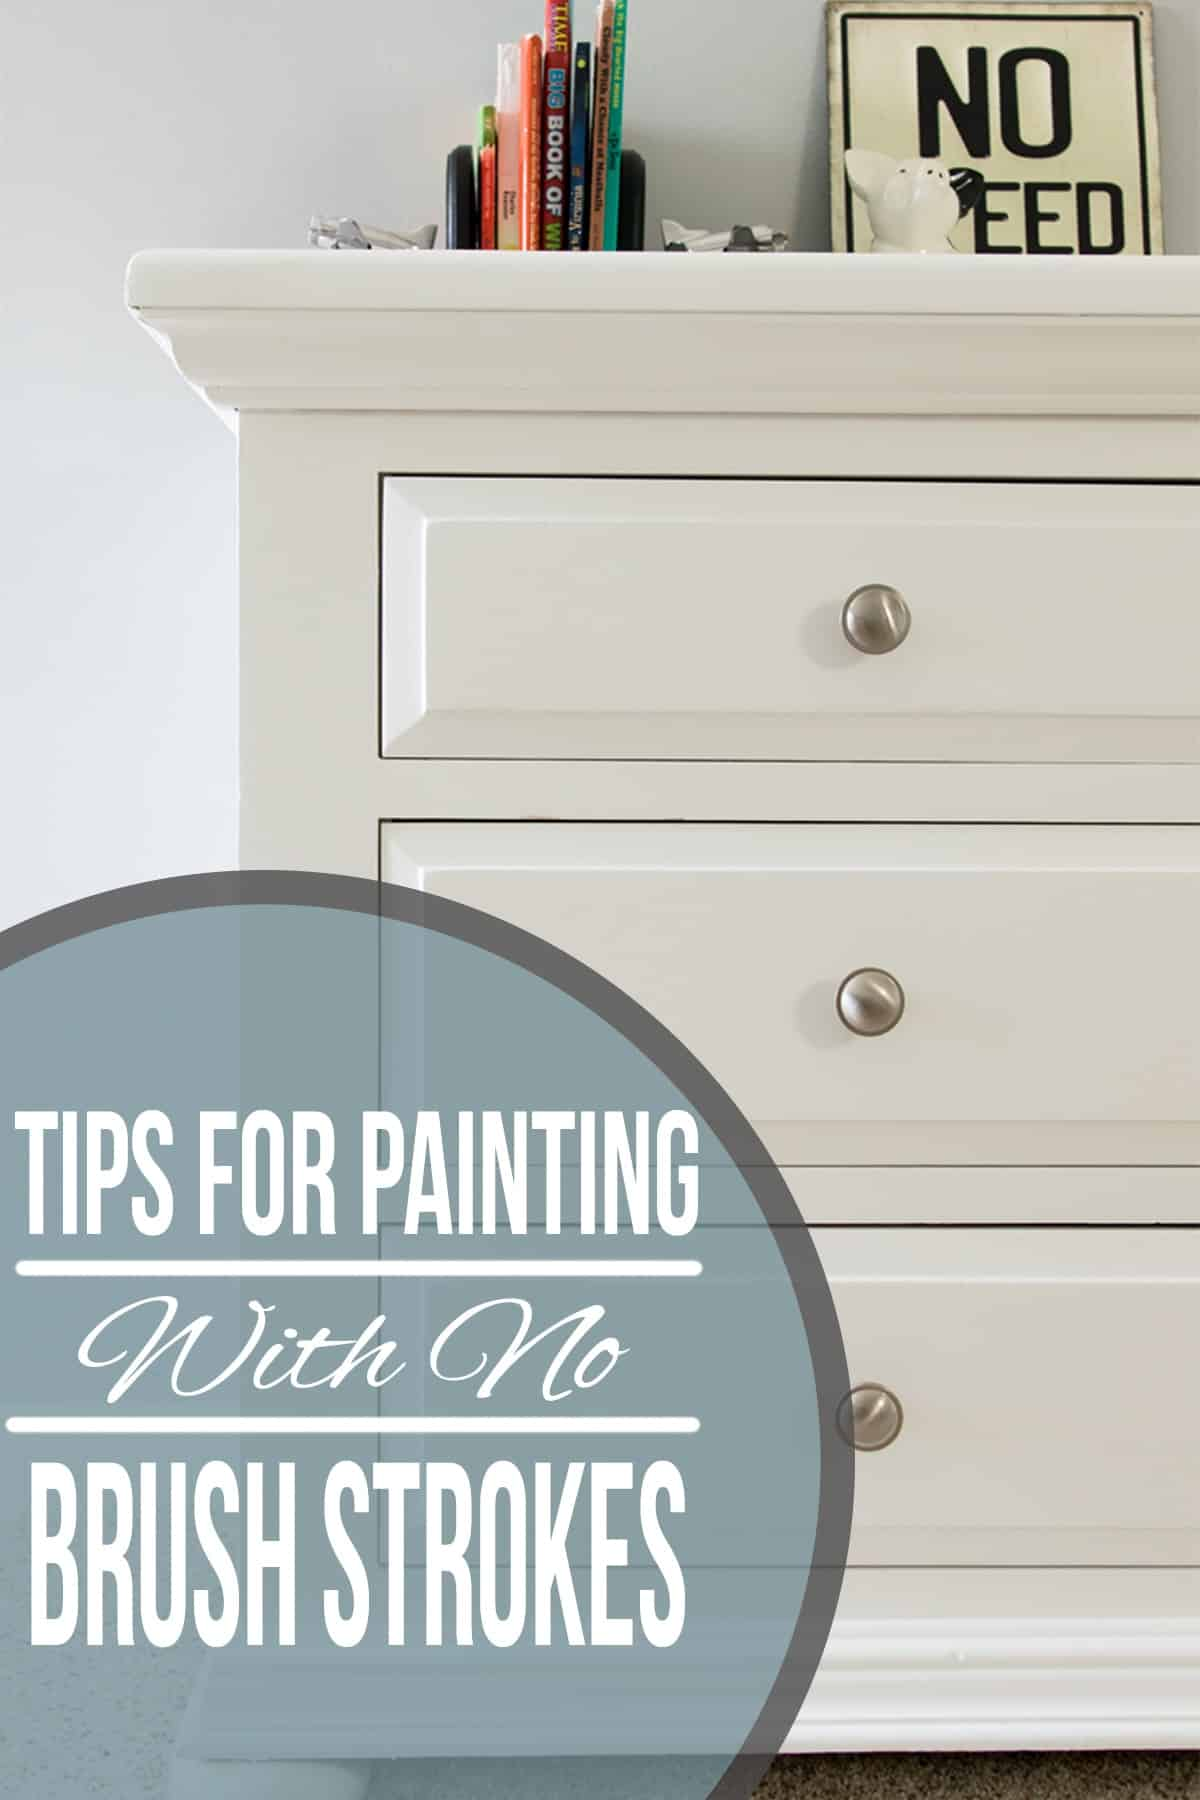 home improvement, paint tips and tricks, paint projects, paint like a pro, DIY home improvement, home projects, home renovation, furniture painting